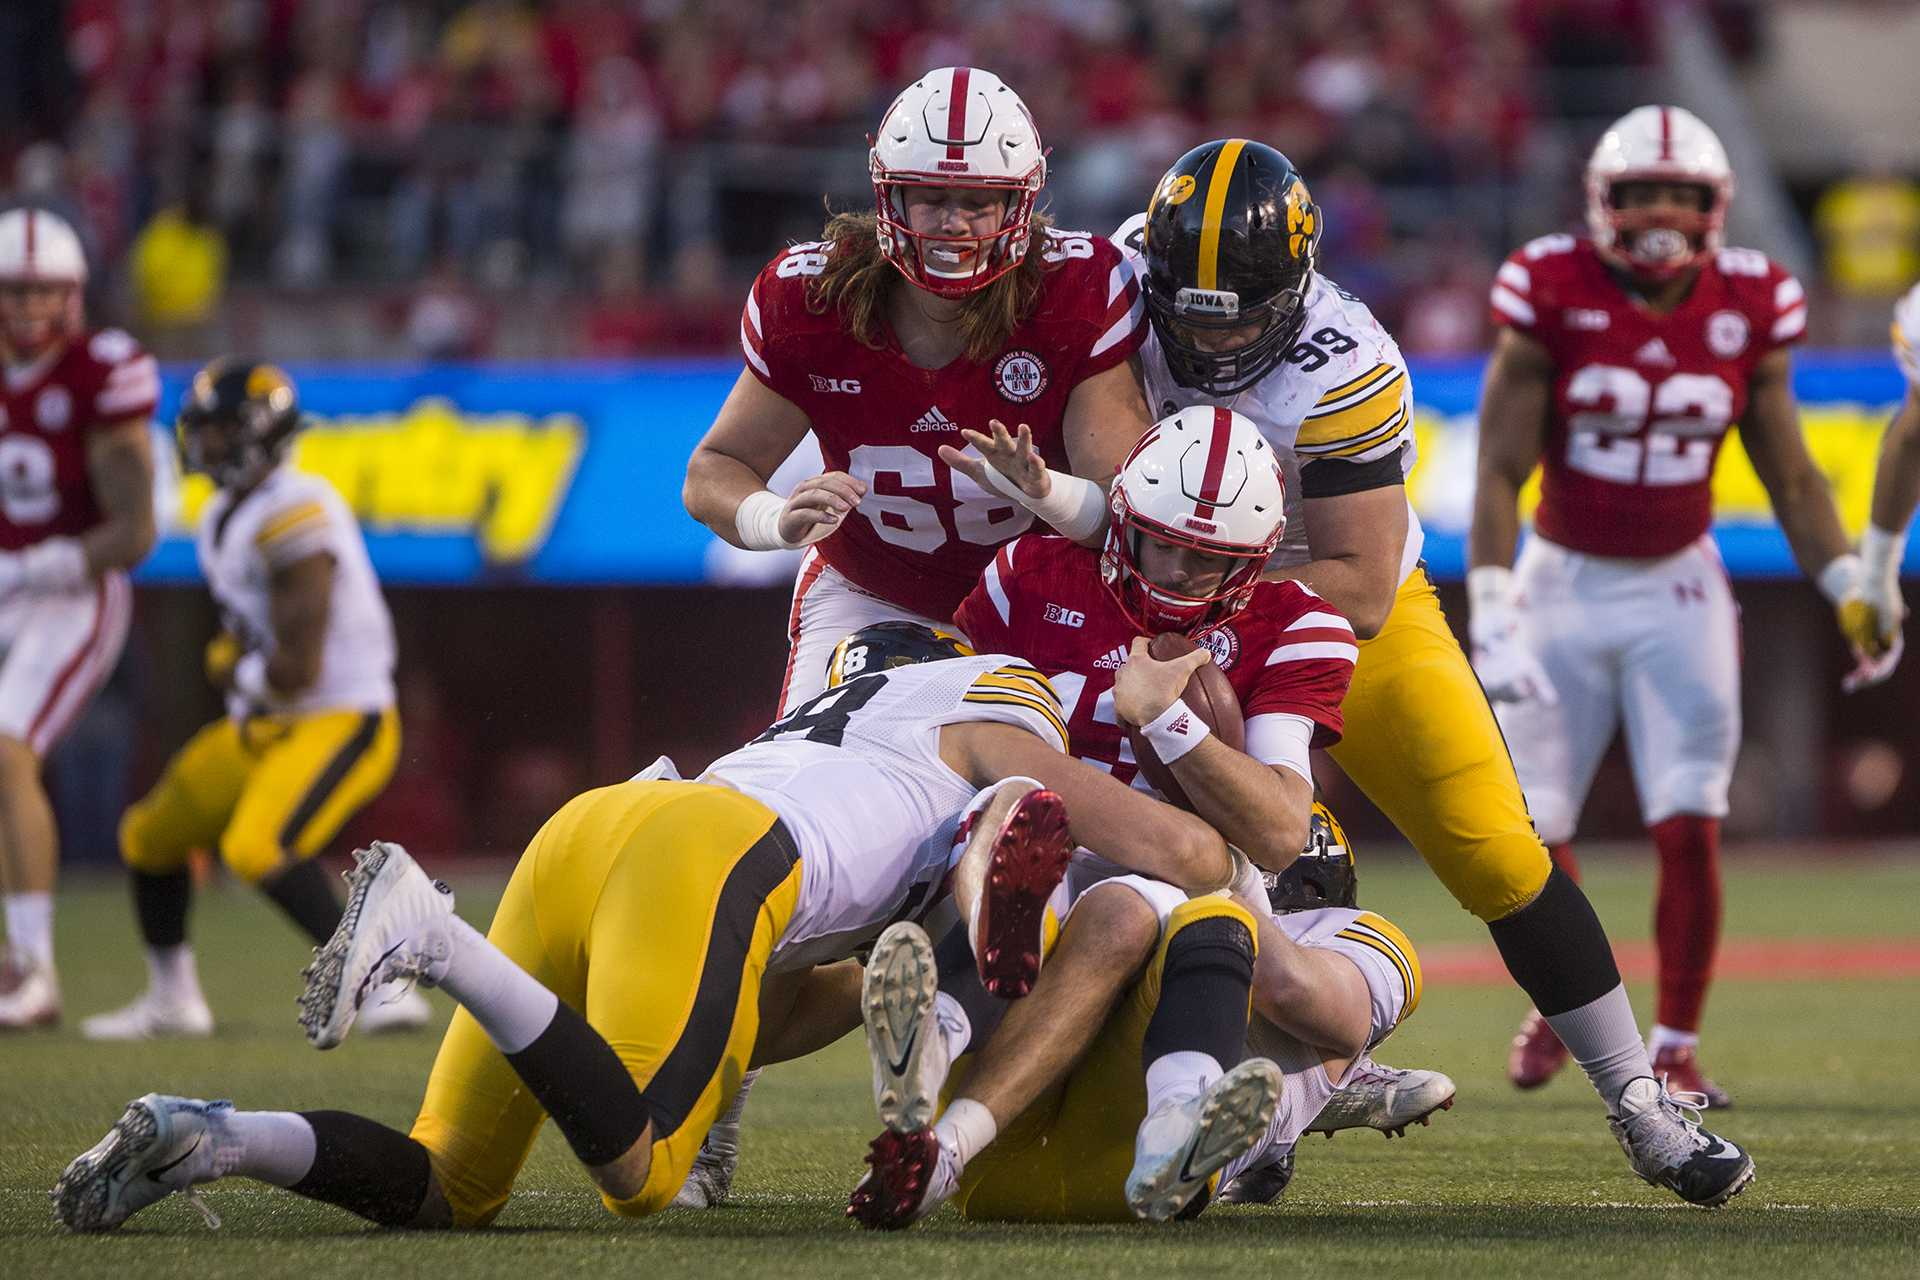 Nebraska quarterback Tanner Lee is sacked by Iowa defensive ends Parker Hesse and Anthony Nelson during Iowa's game against Nebraska at Memorial Stadium on Friday, Nov. 24, 2017. The Hawkeyes defeated the Cornhuskers 56-14.